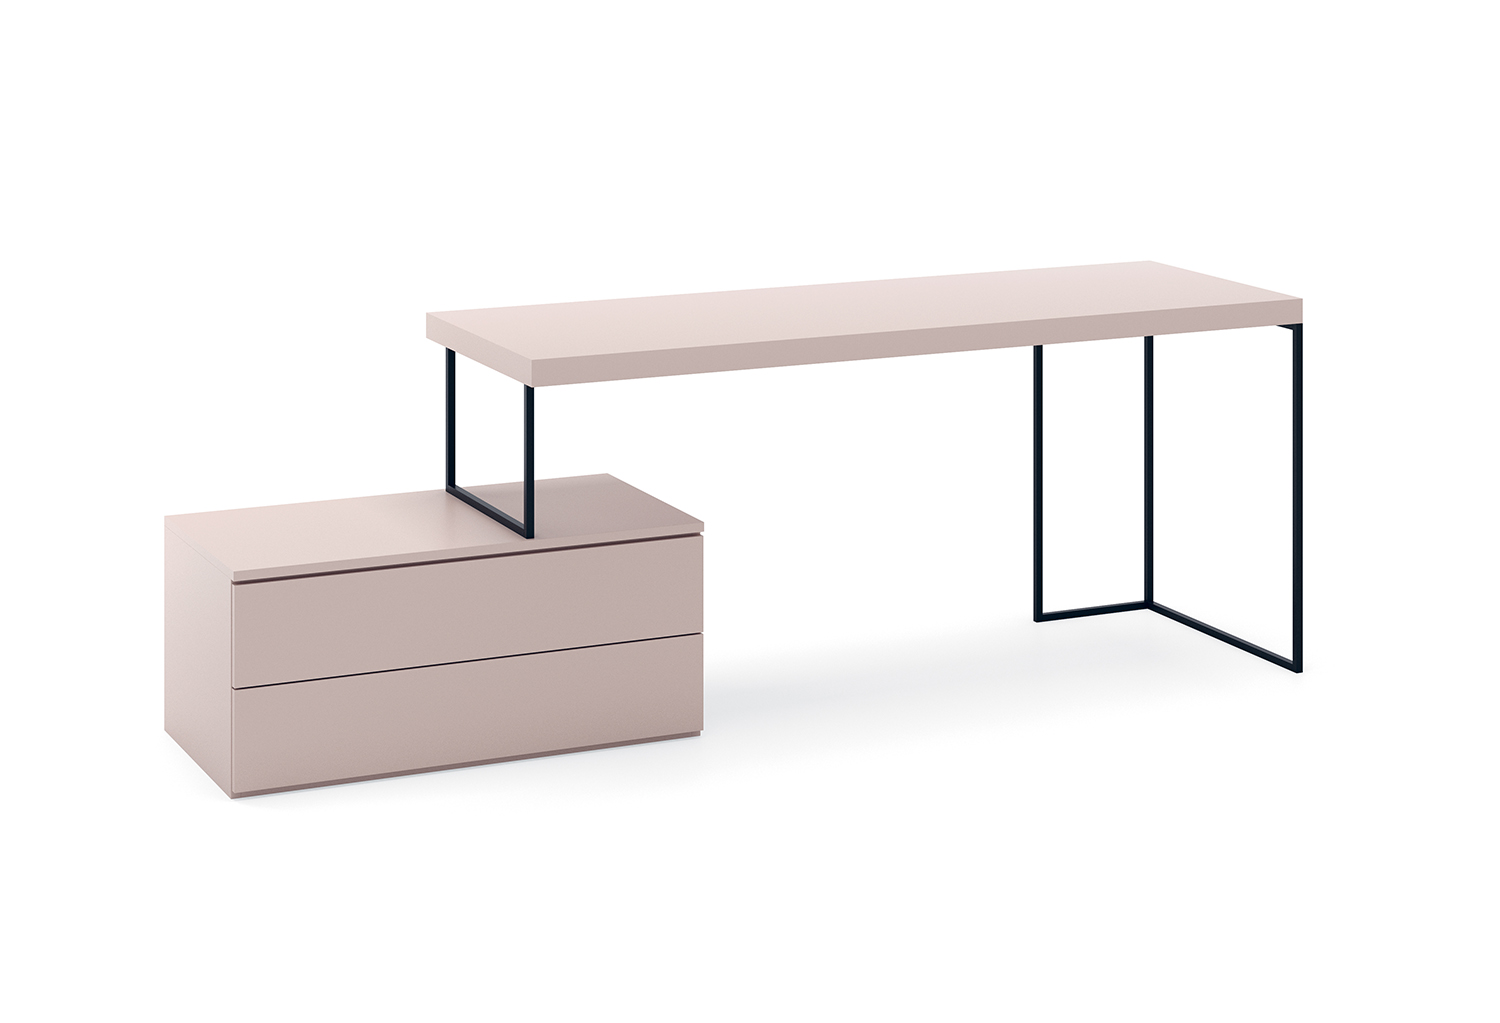 Kios desk with metal frame and integrated drawer unit